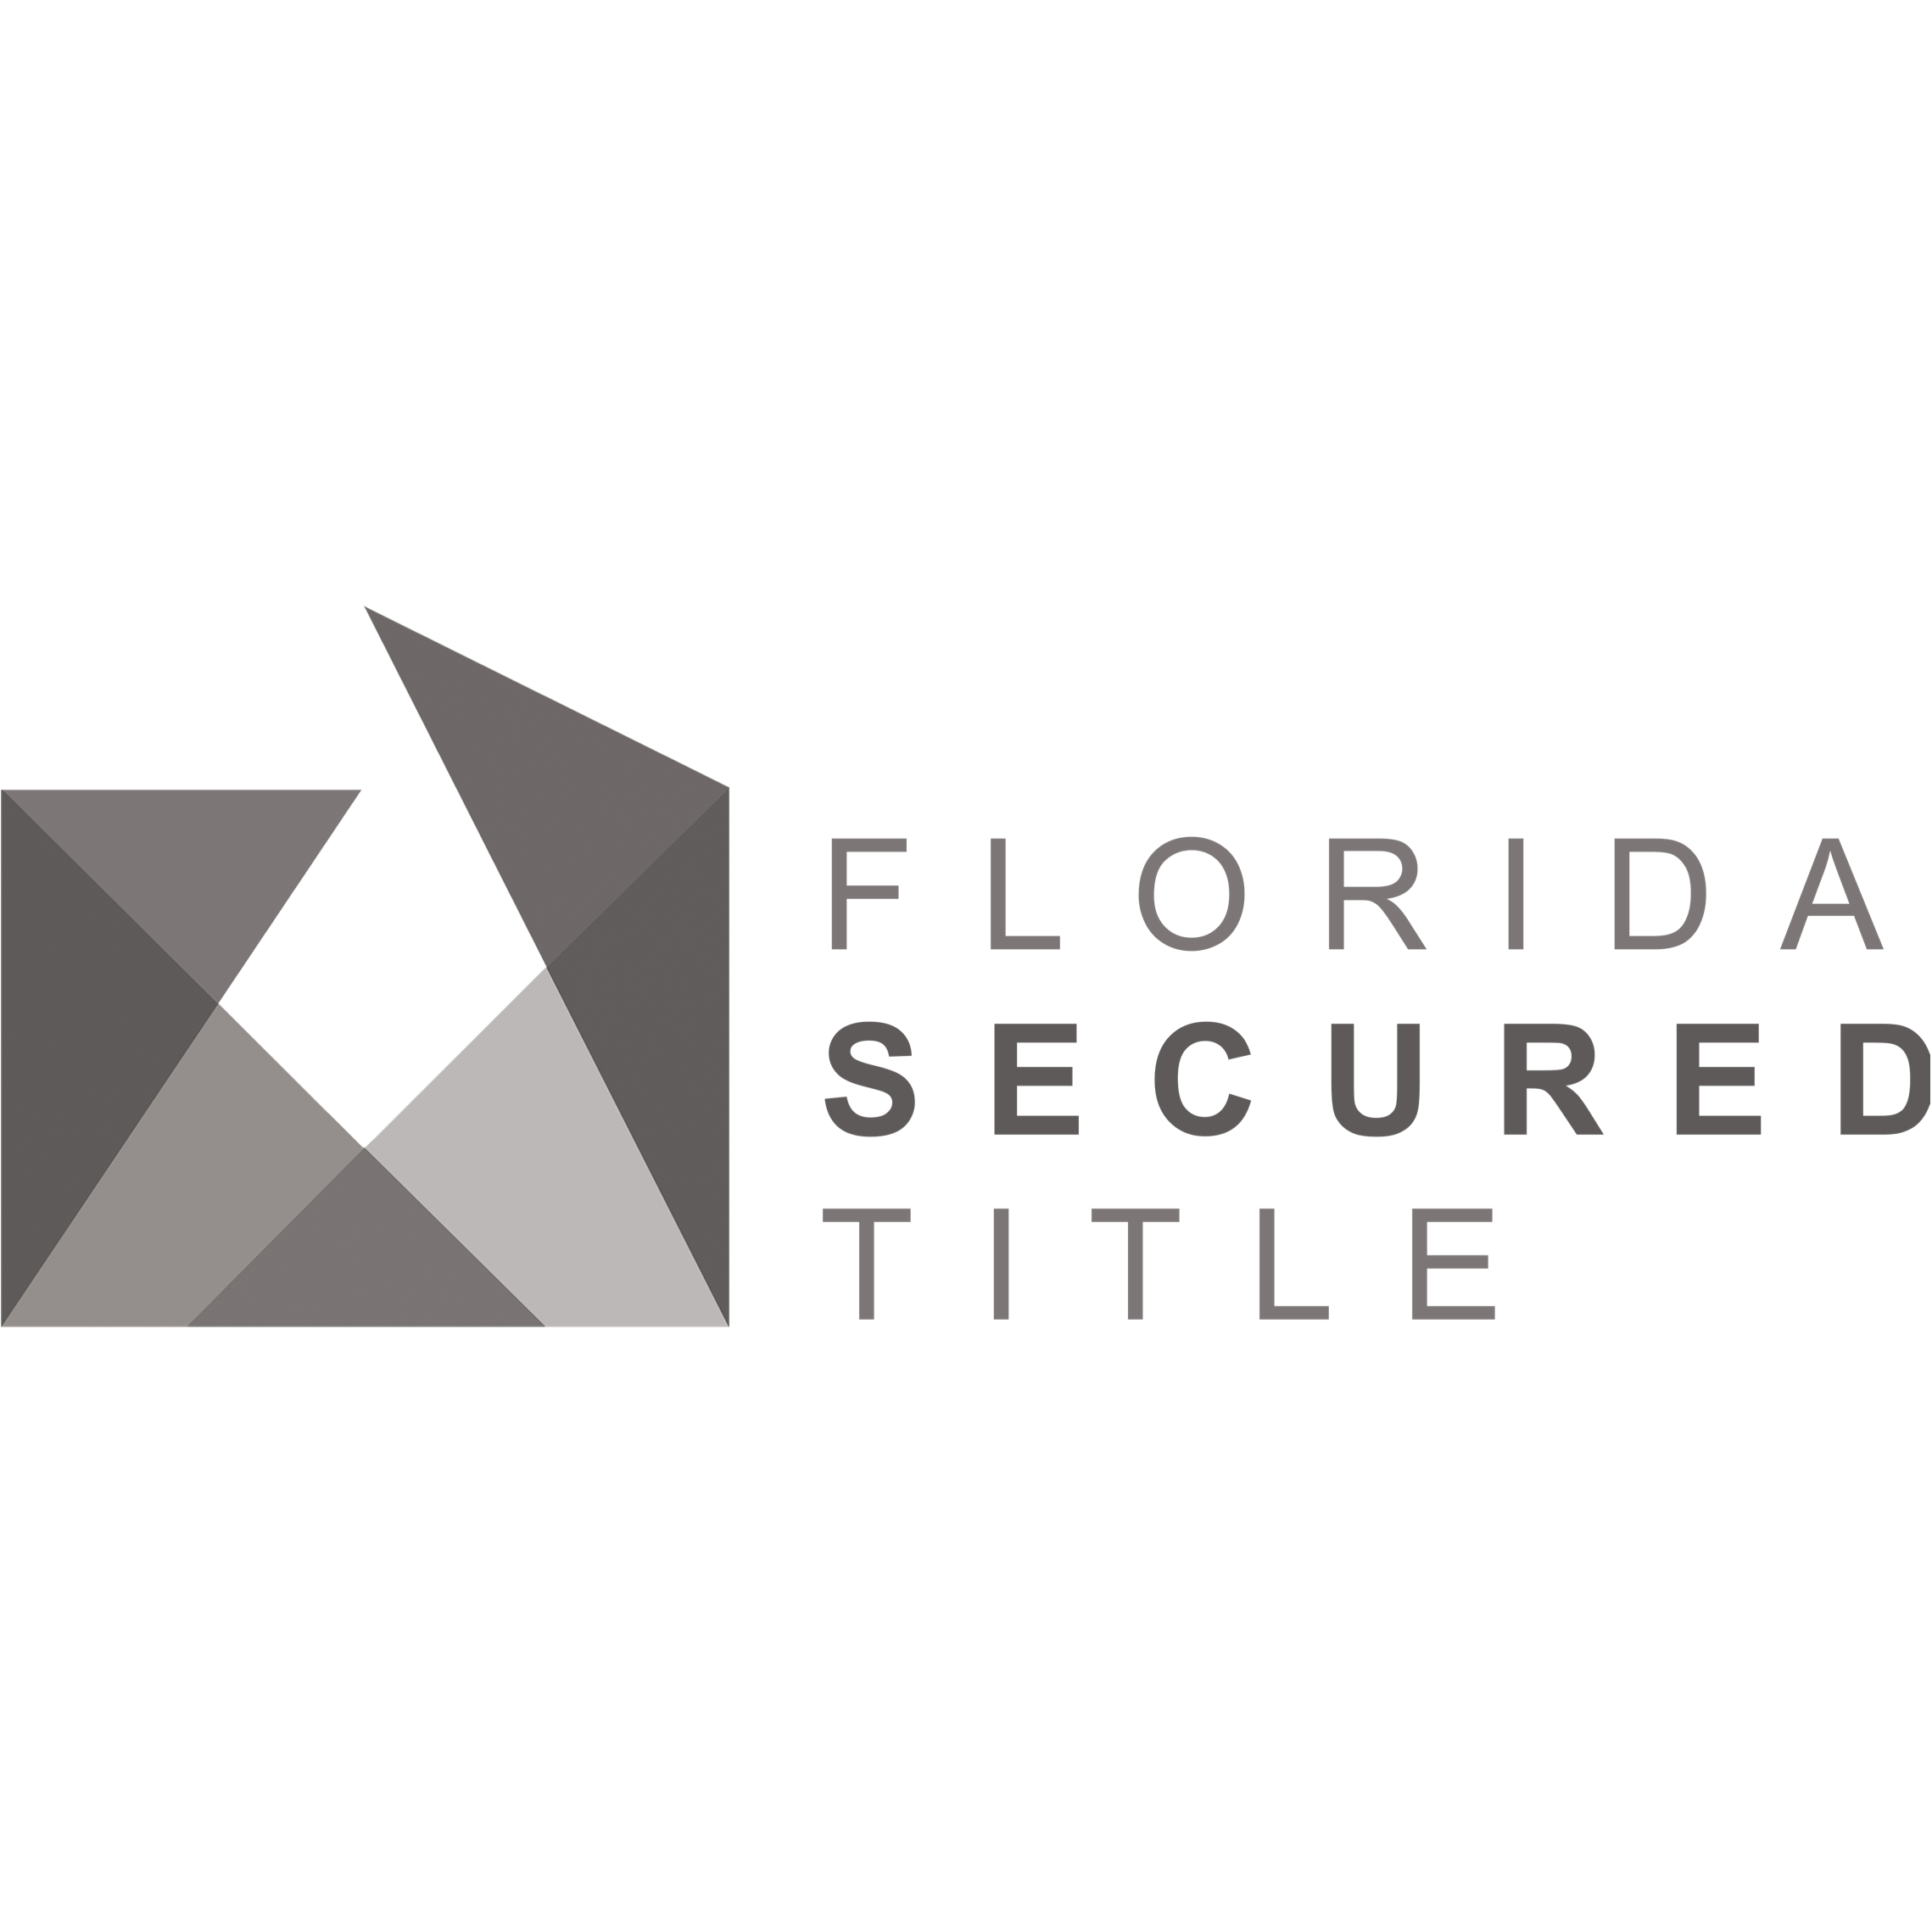 Florida Secured Title LLC